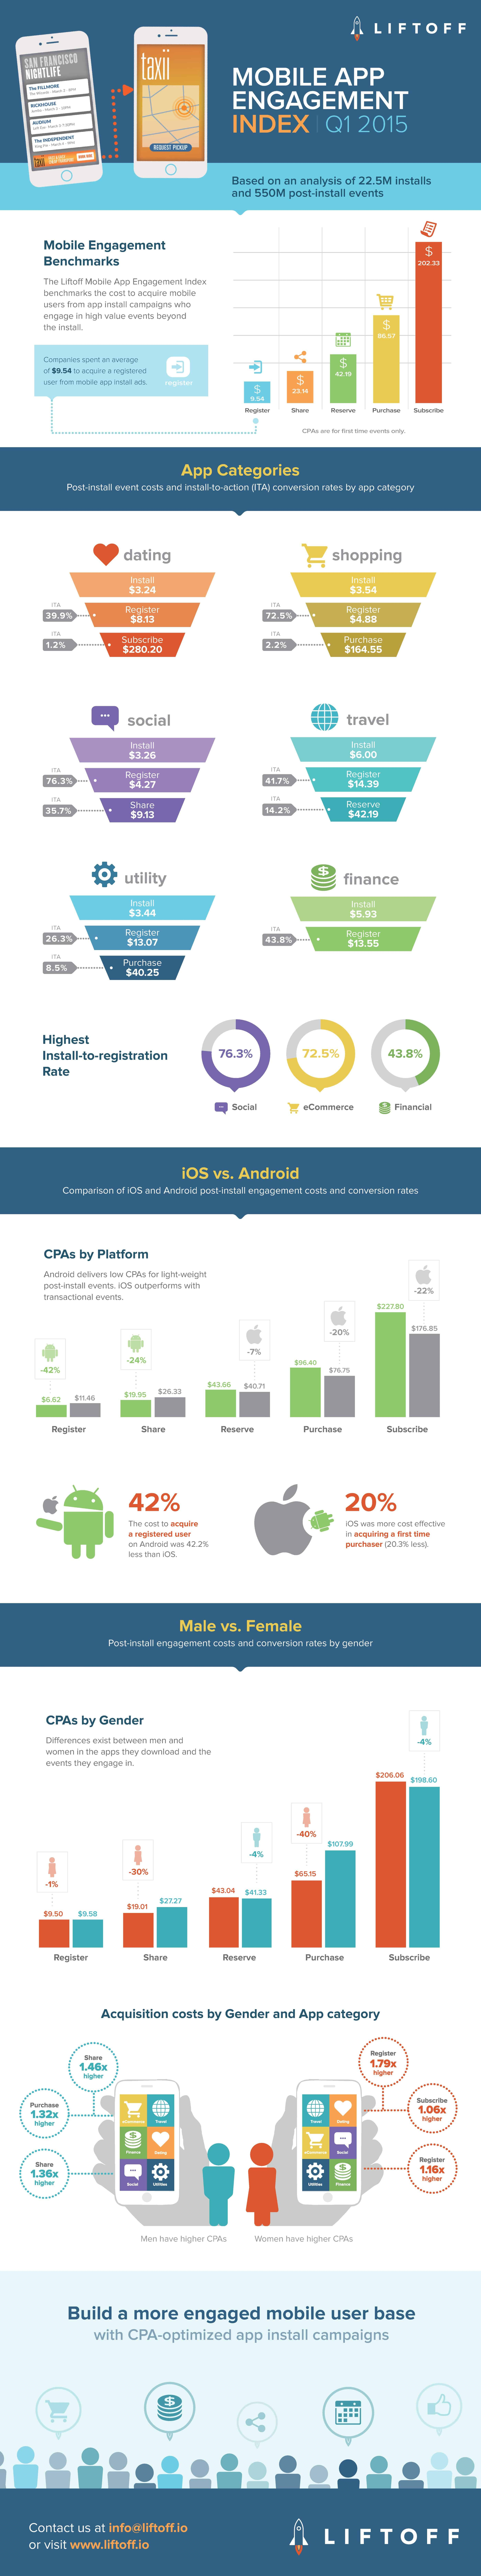 App Engagement Infographic[1]